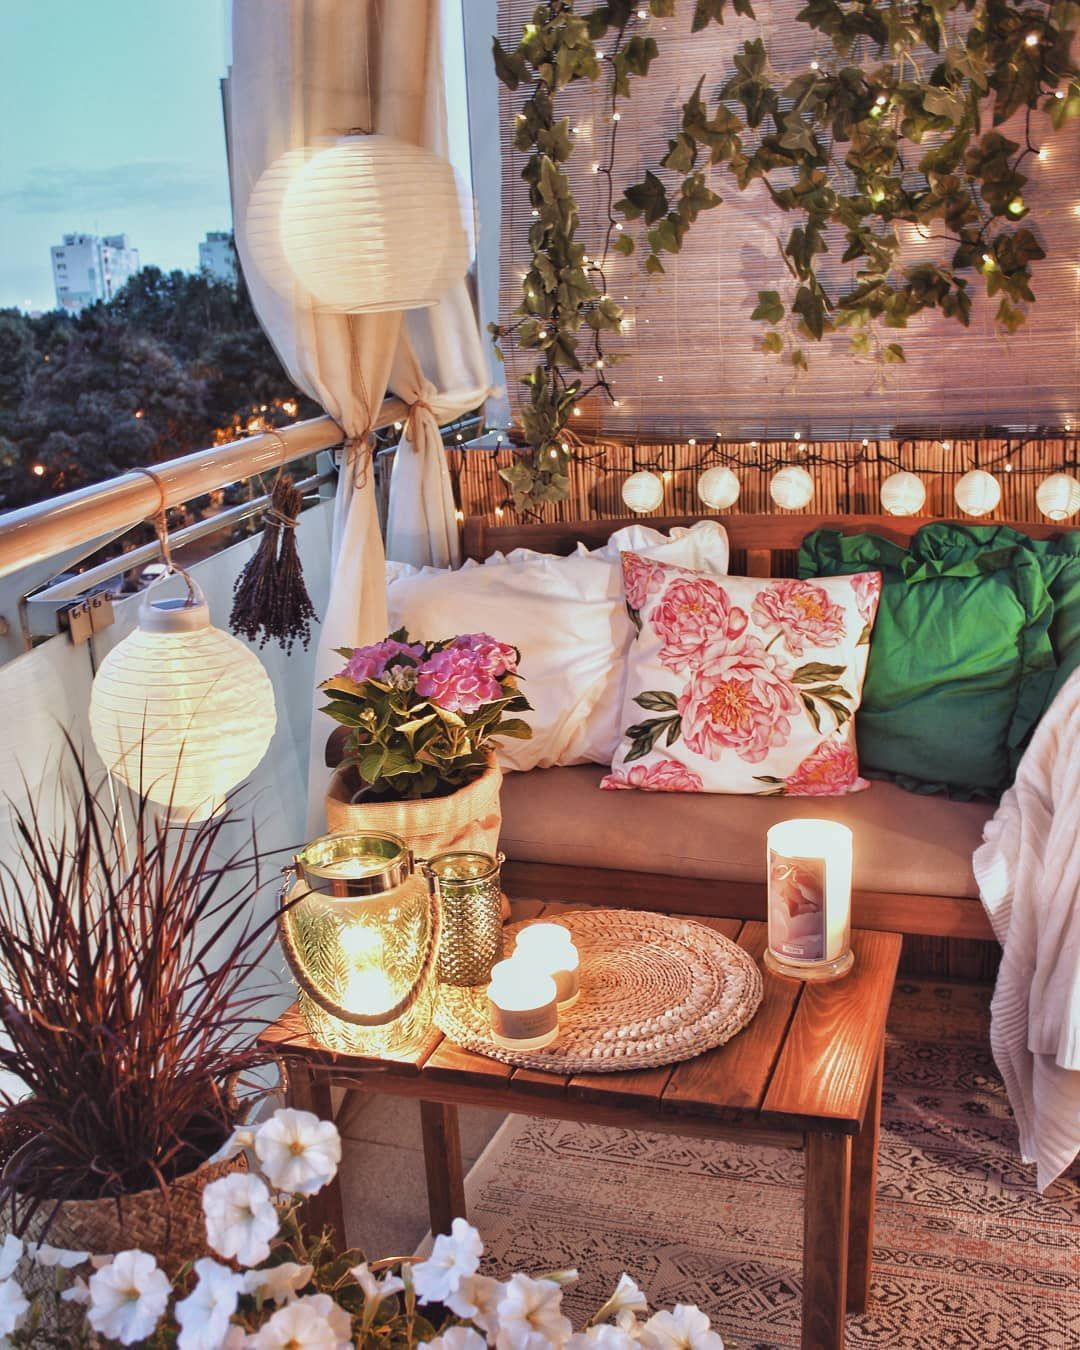 40 Cozy Balcony Ideas and Decor Inspiration 2019 - Page 8 of 41 - My Blog